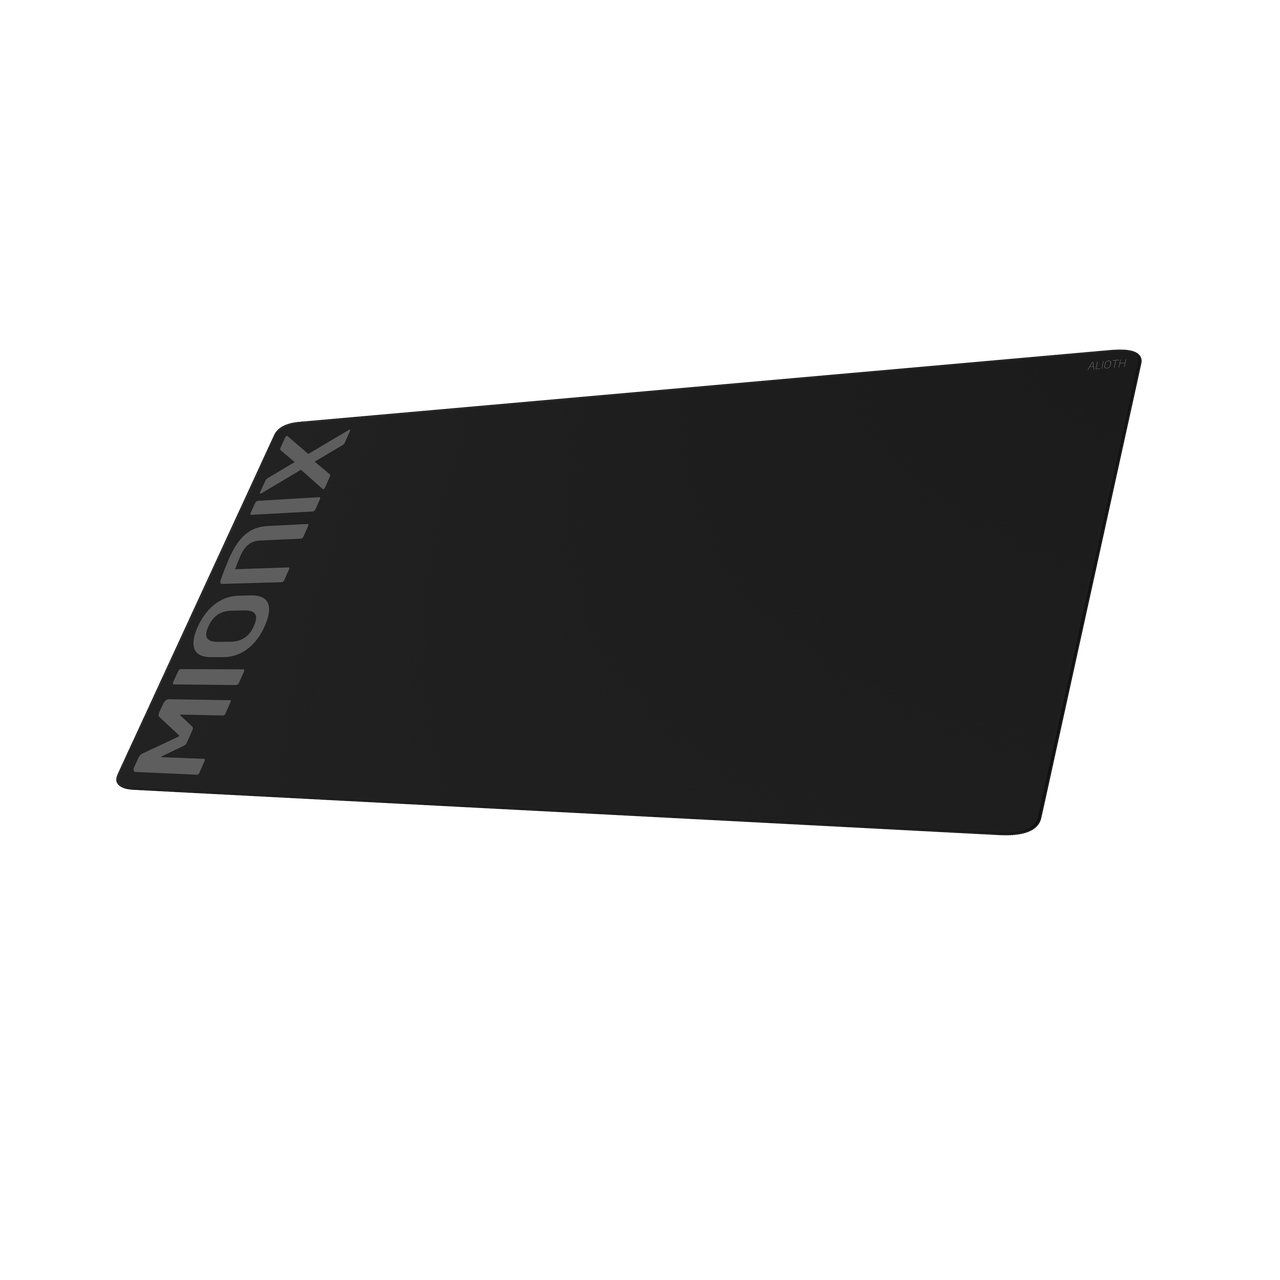 Mionix Alioth XL Black,Grey Gaming mouse pad